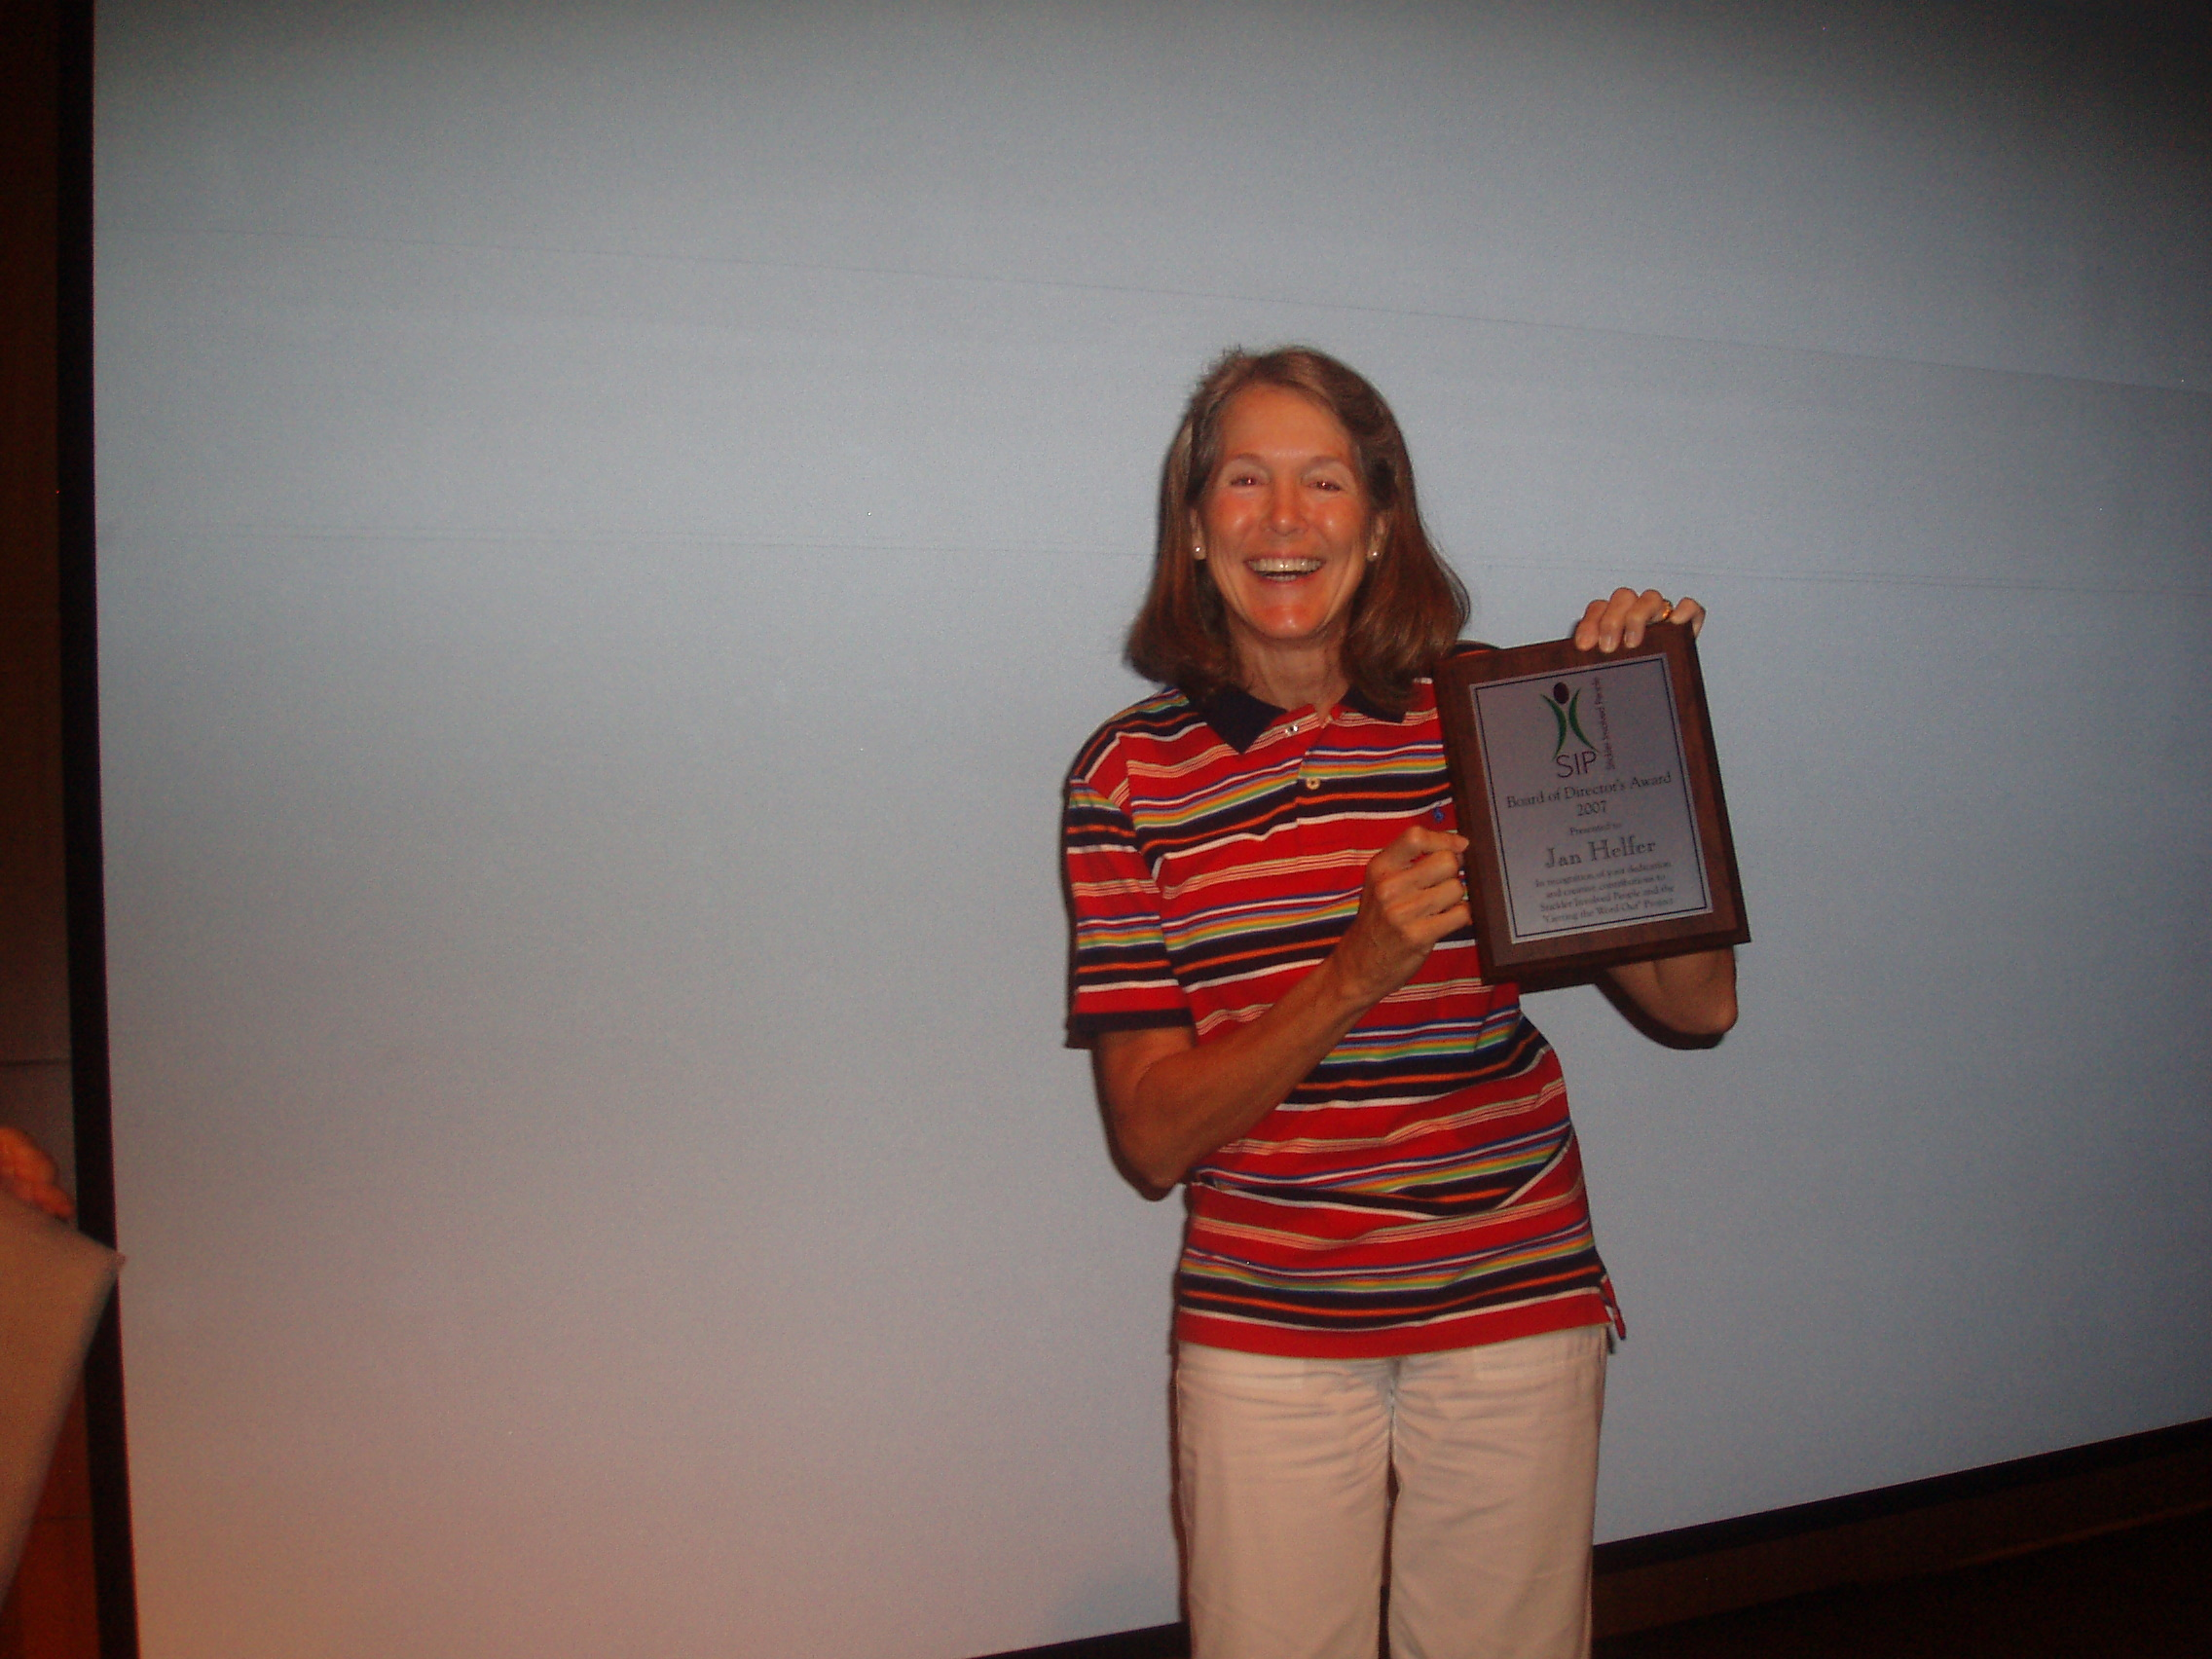 Jan Helfer with her Award